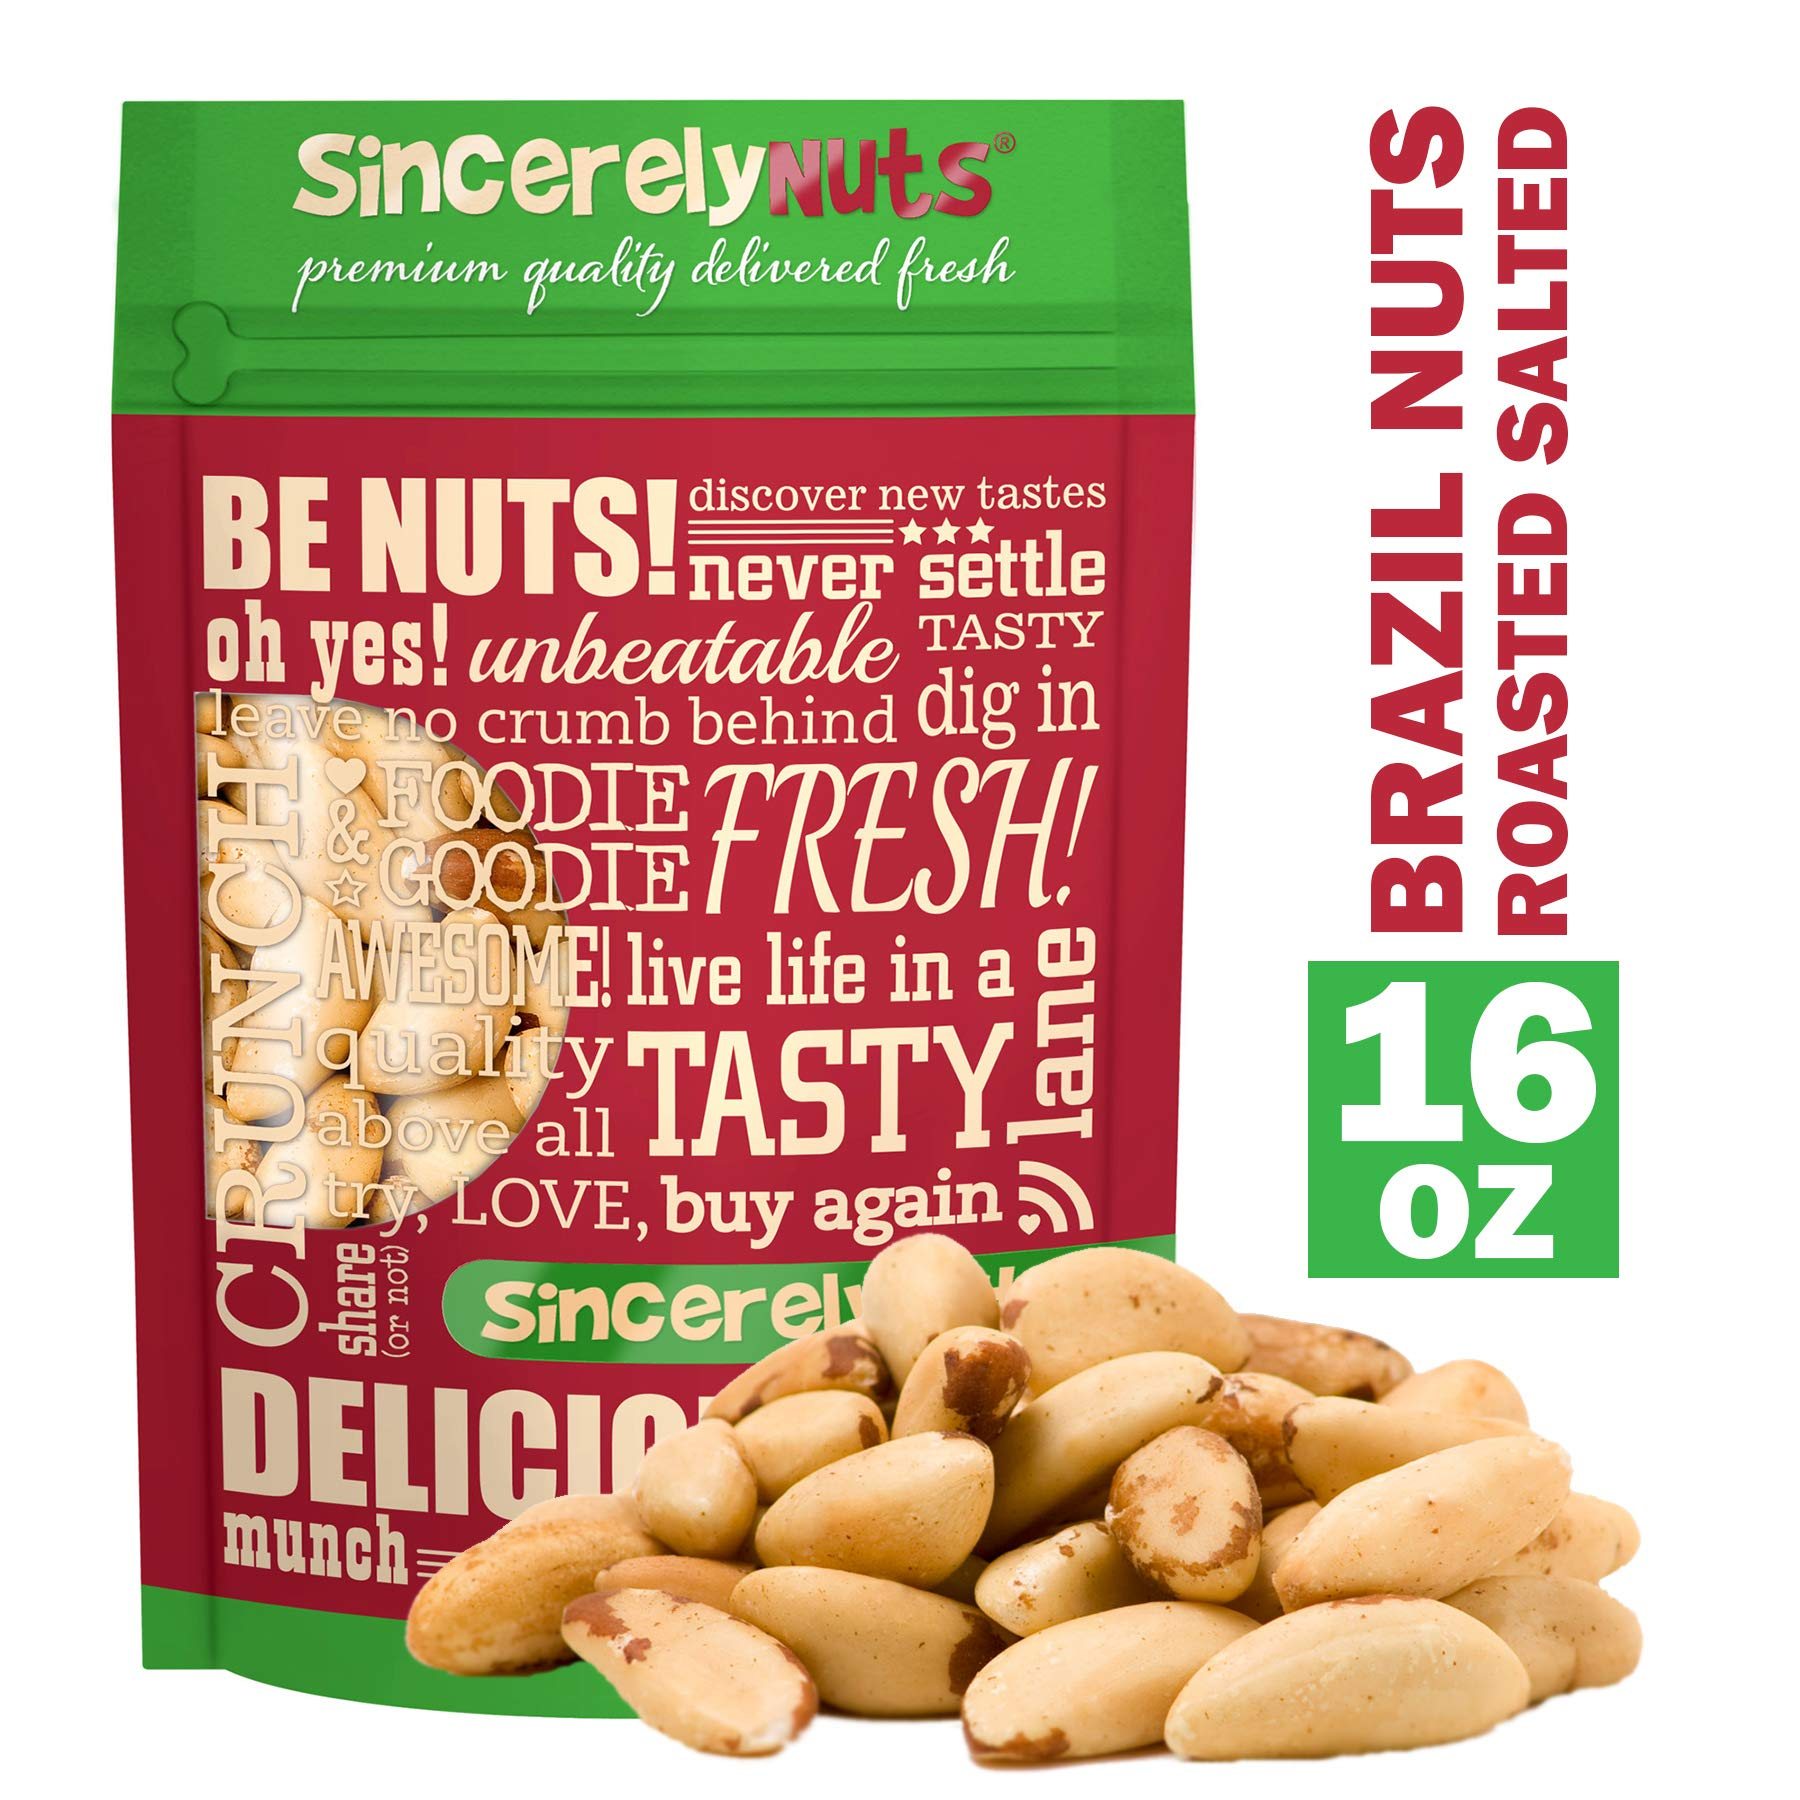 Sincerely Nuts Brazil Nuts Roasted and Salted (1 Lb. Bag) | Delicious Healthy Snack Food | Whole, Kosher, Vegan, Gluten Free | Gourmet Snack | Great Source of Protein, Vitamins & Minerals